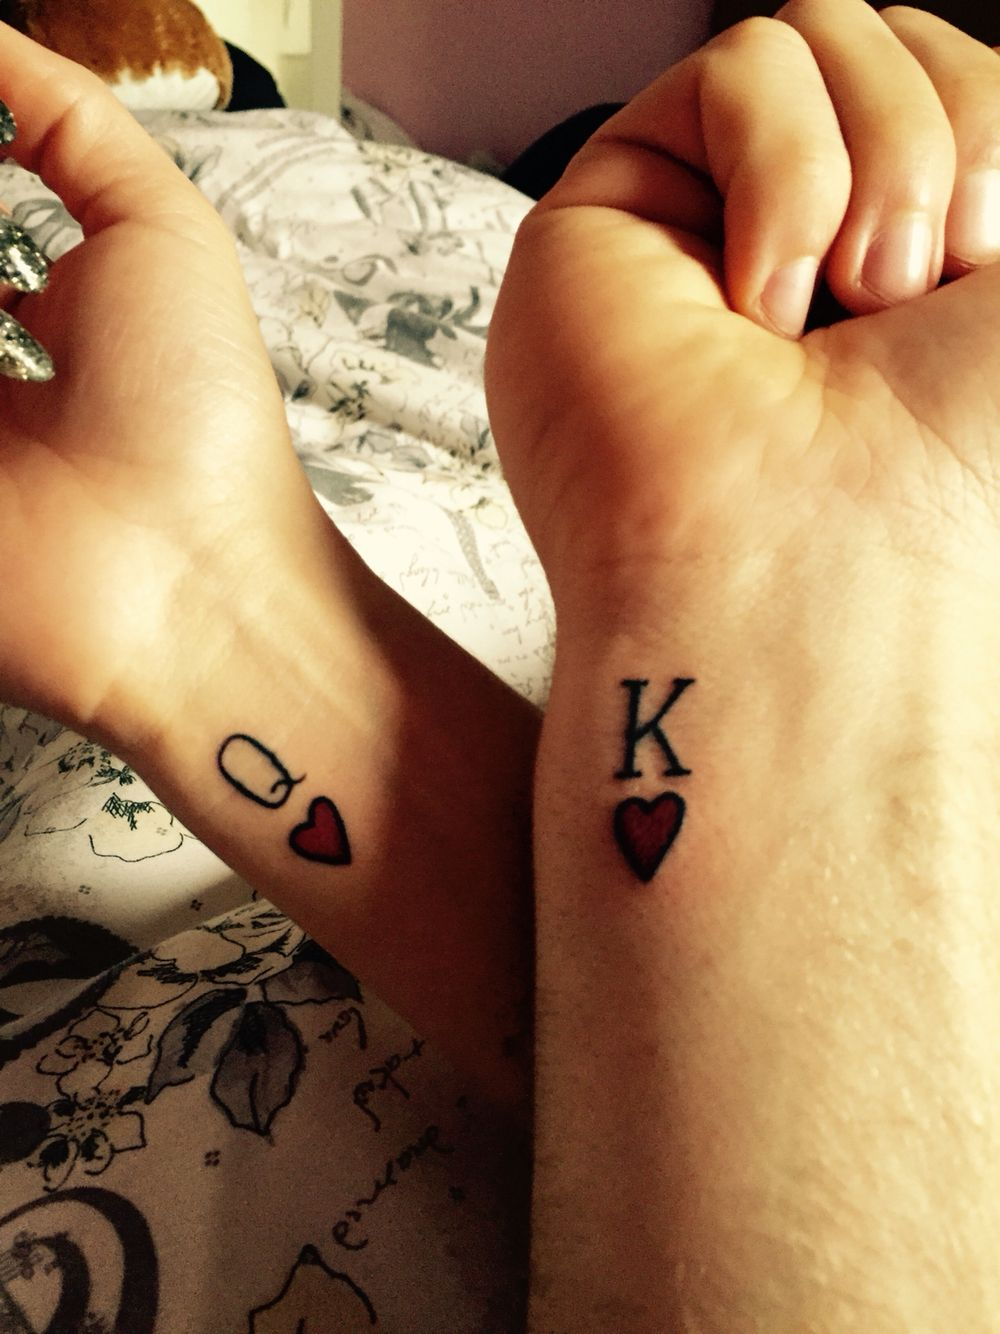 Boyfriend And Girlfriend Matching Tattoos Hearts